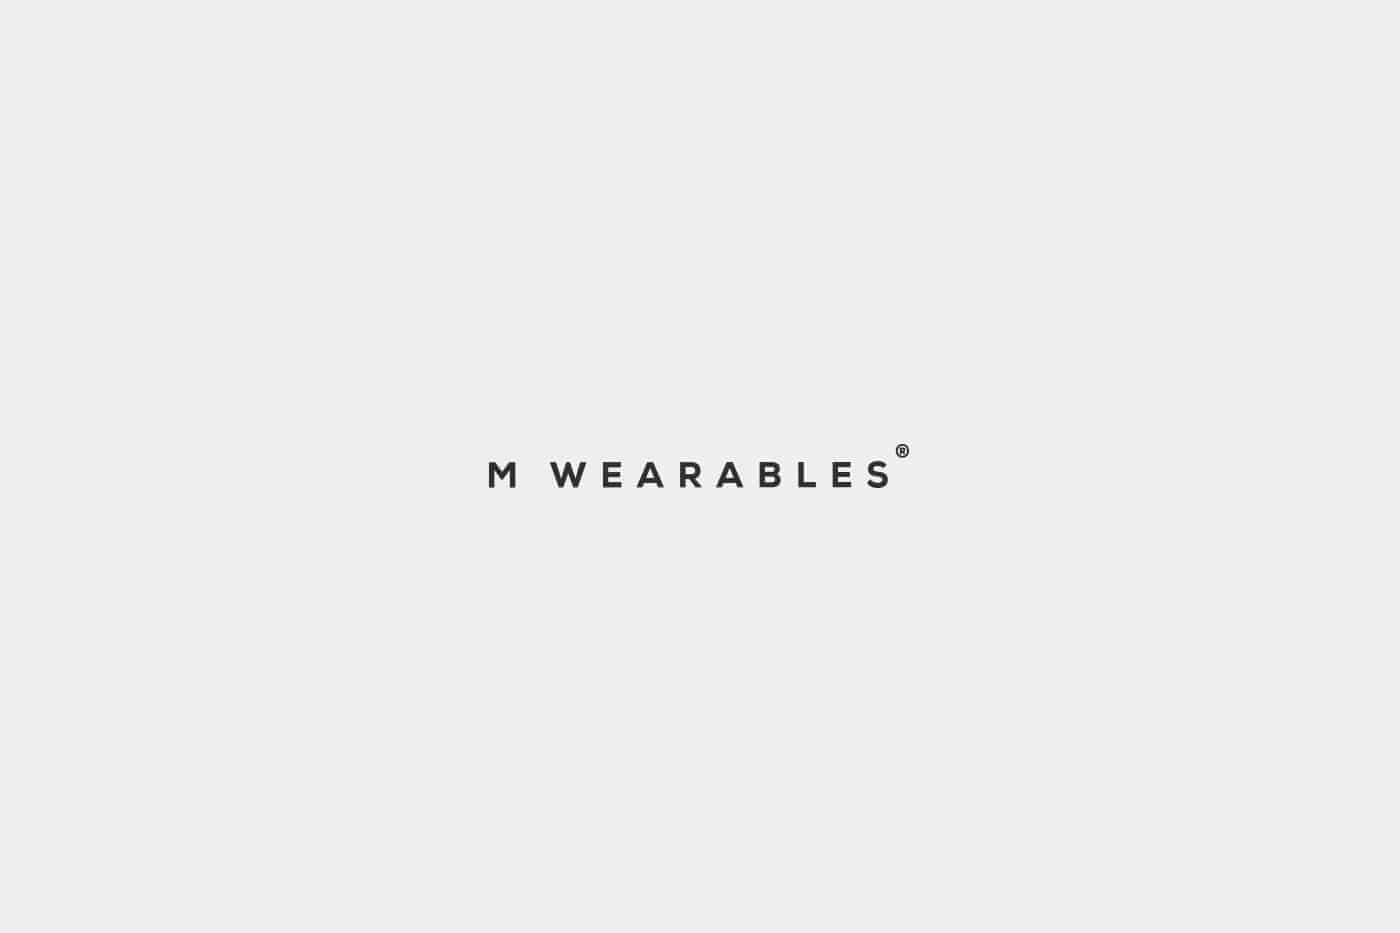 M Wearables